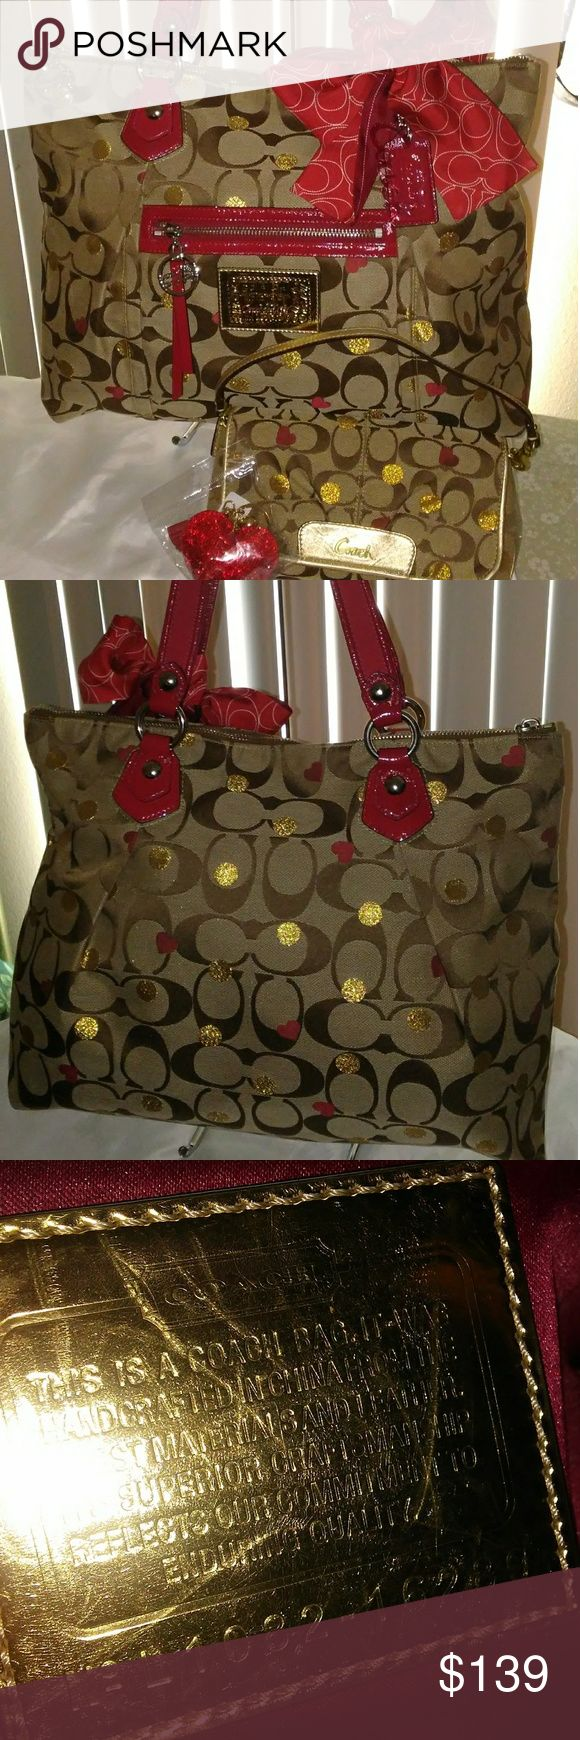 """COACH POPPY LAURA SECRET ADMIRER#16289 Coach Poppy Laura Secret Admirer Glam Tote, Coach coordinating red ponytail scarf , Coach large wristlet and generic red heart keychain. Comes with dustbag as well. Glam tote measures 16x12x4 strap drop 8"""". Bag is in pristine condition. Wallet also EUC! Keychain new. Scarf beautiful! Smoke-free home. *NO TRADES* Coach Bags Totes"""